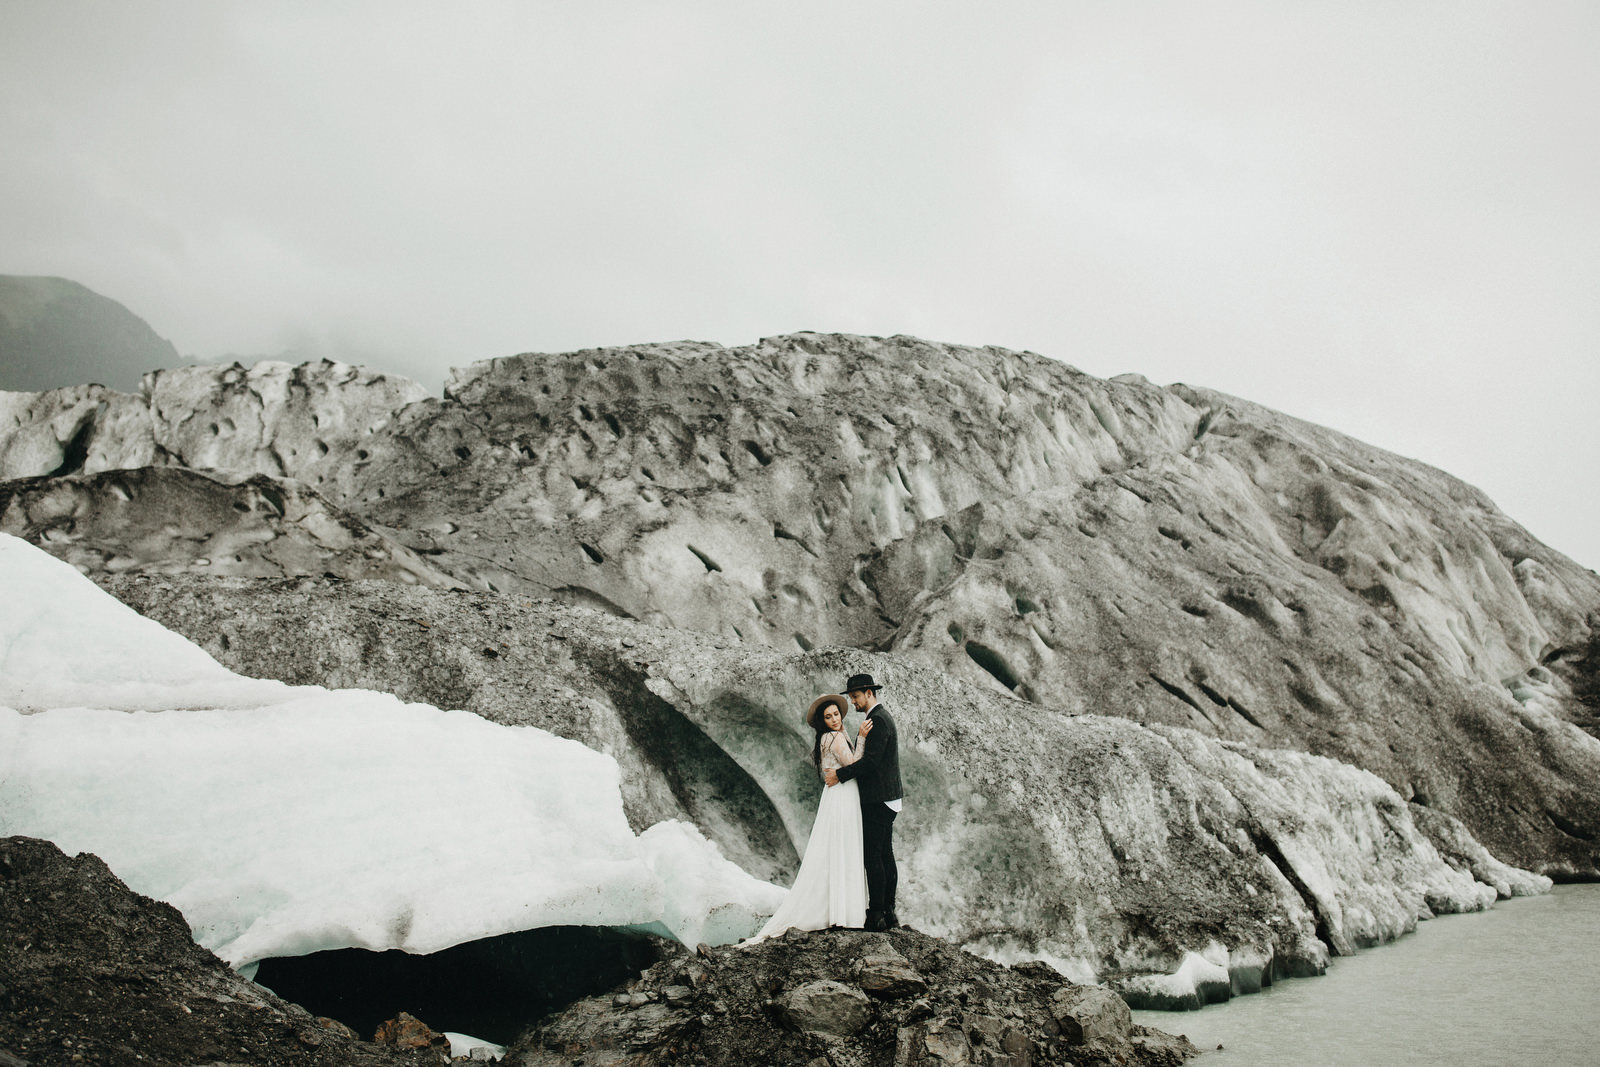 athena-and-camron-alaska-elopement-wedding-inspiration-india-earl-athena-grace-glacier-lagoon-wedding102